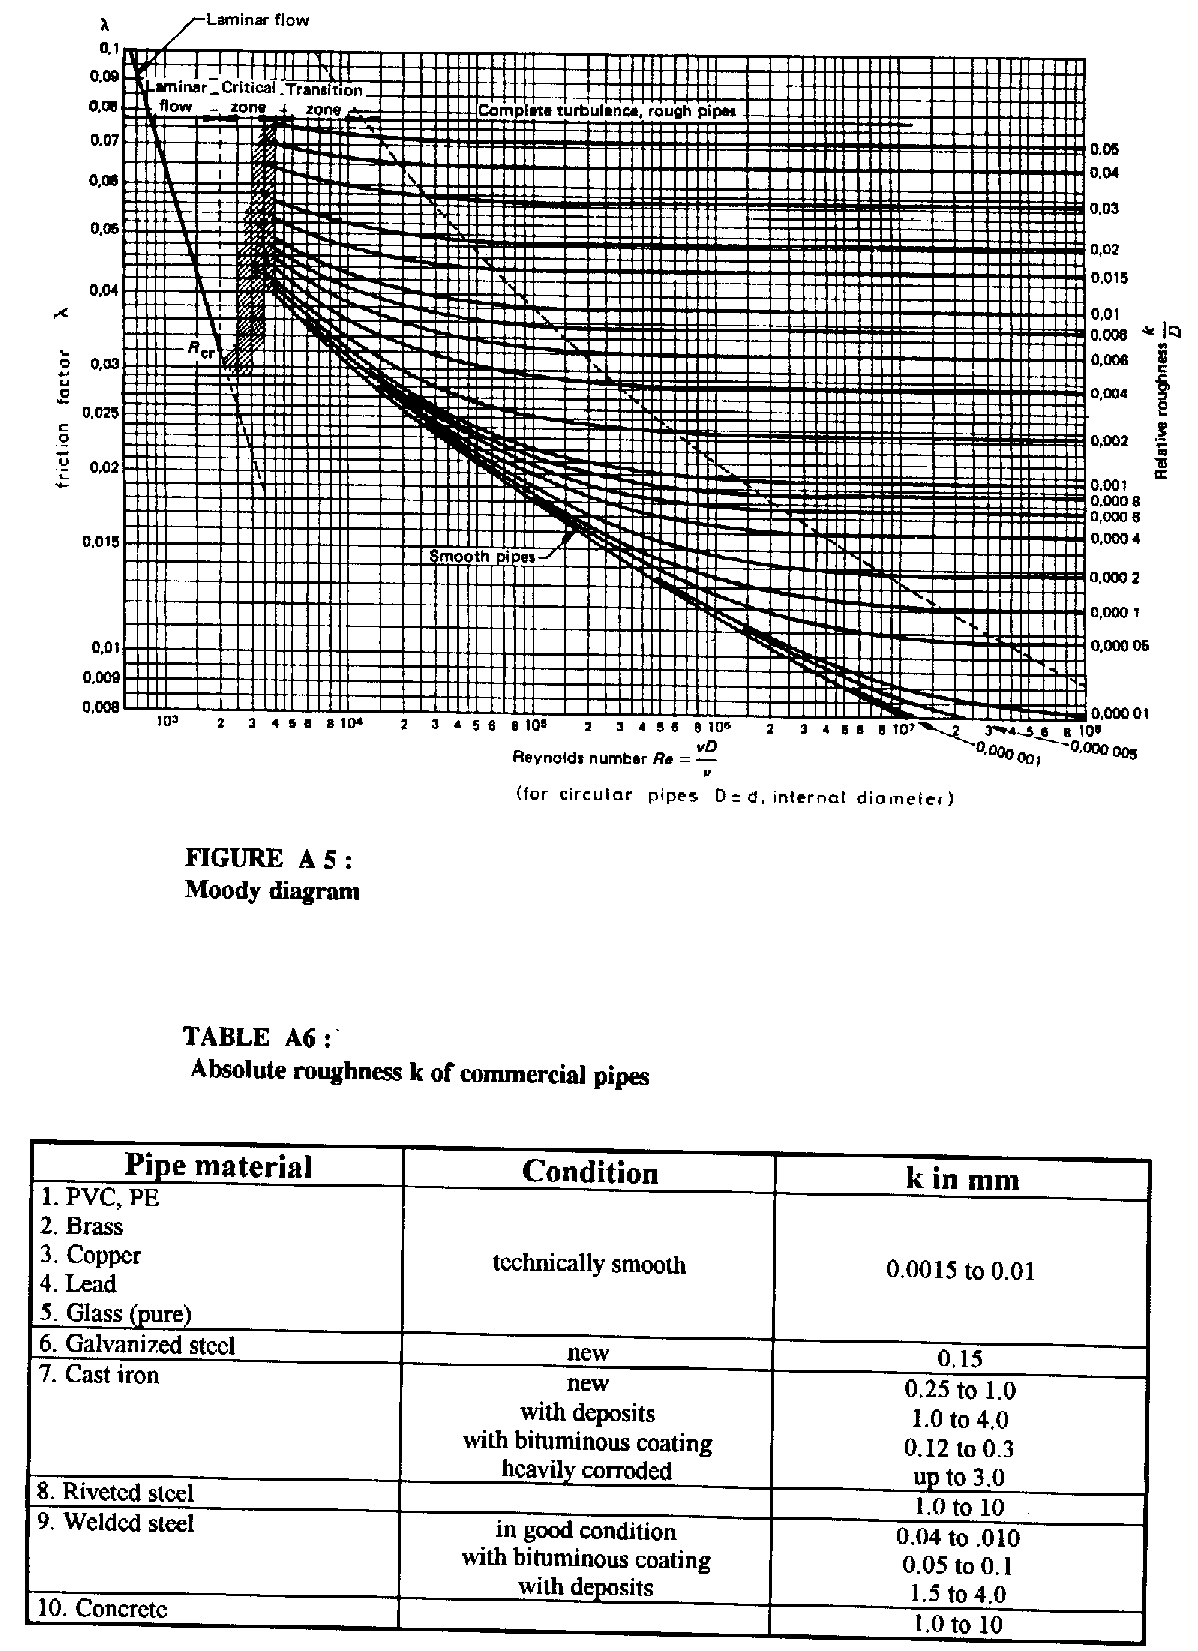 Manual on pumps used as turbines appendix d working diagrams figure a 5moody diagram ccuart